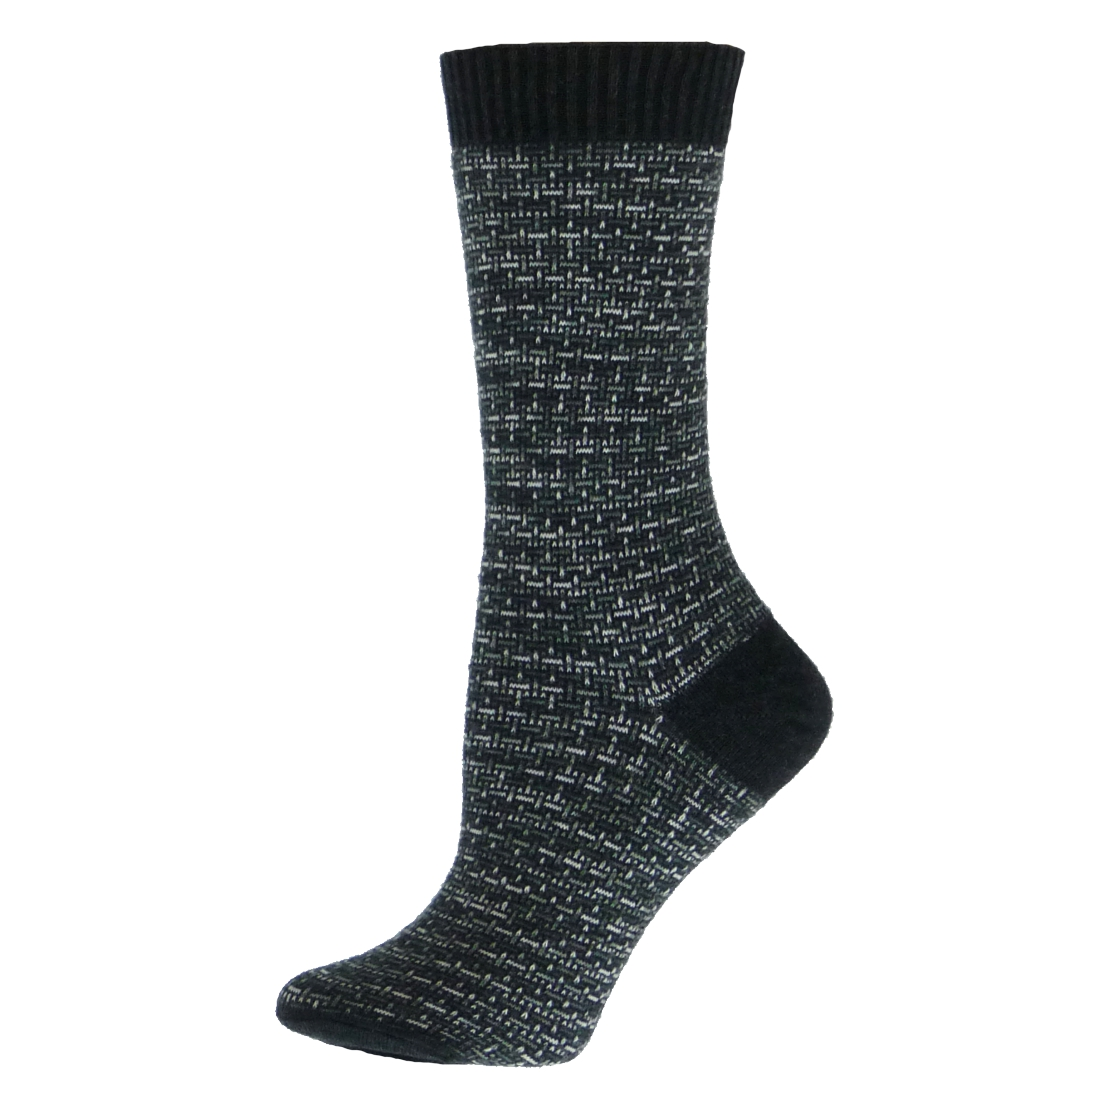 Free shipping BOTH ways on womens cotton crew socks, from our vast selection of styles. Fast delivery, and 24/7/ real-person service with a smile. Click or call